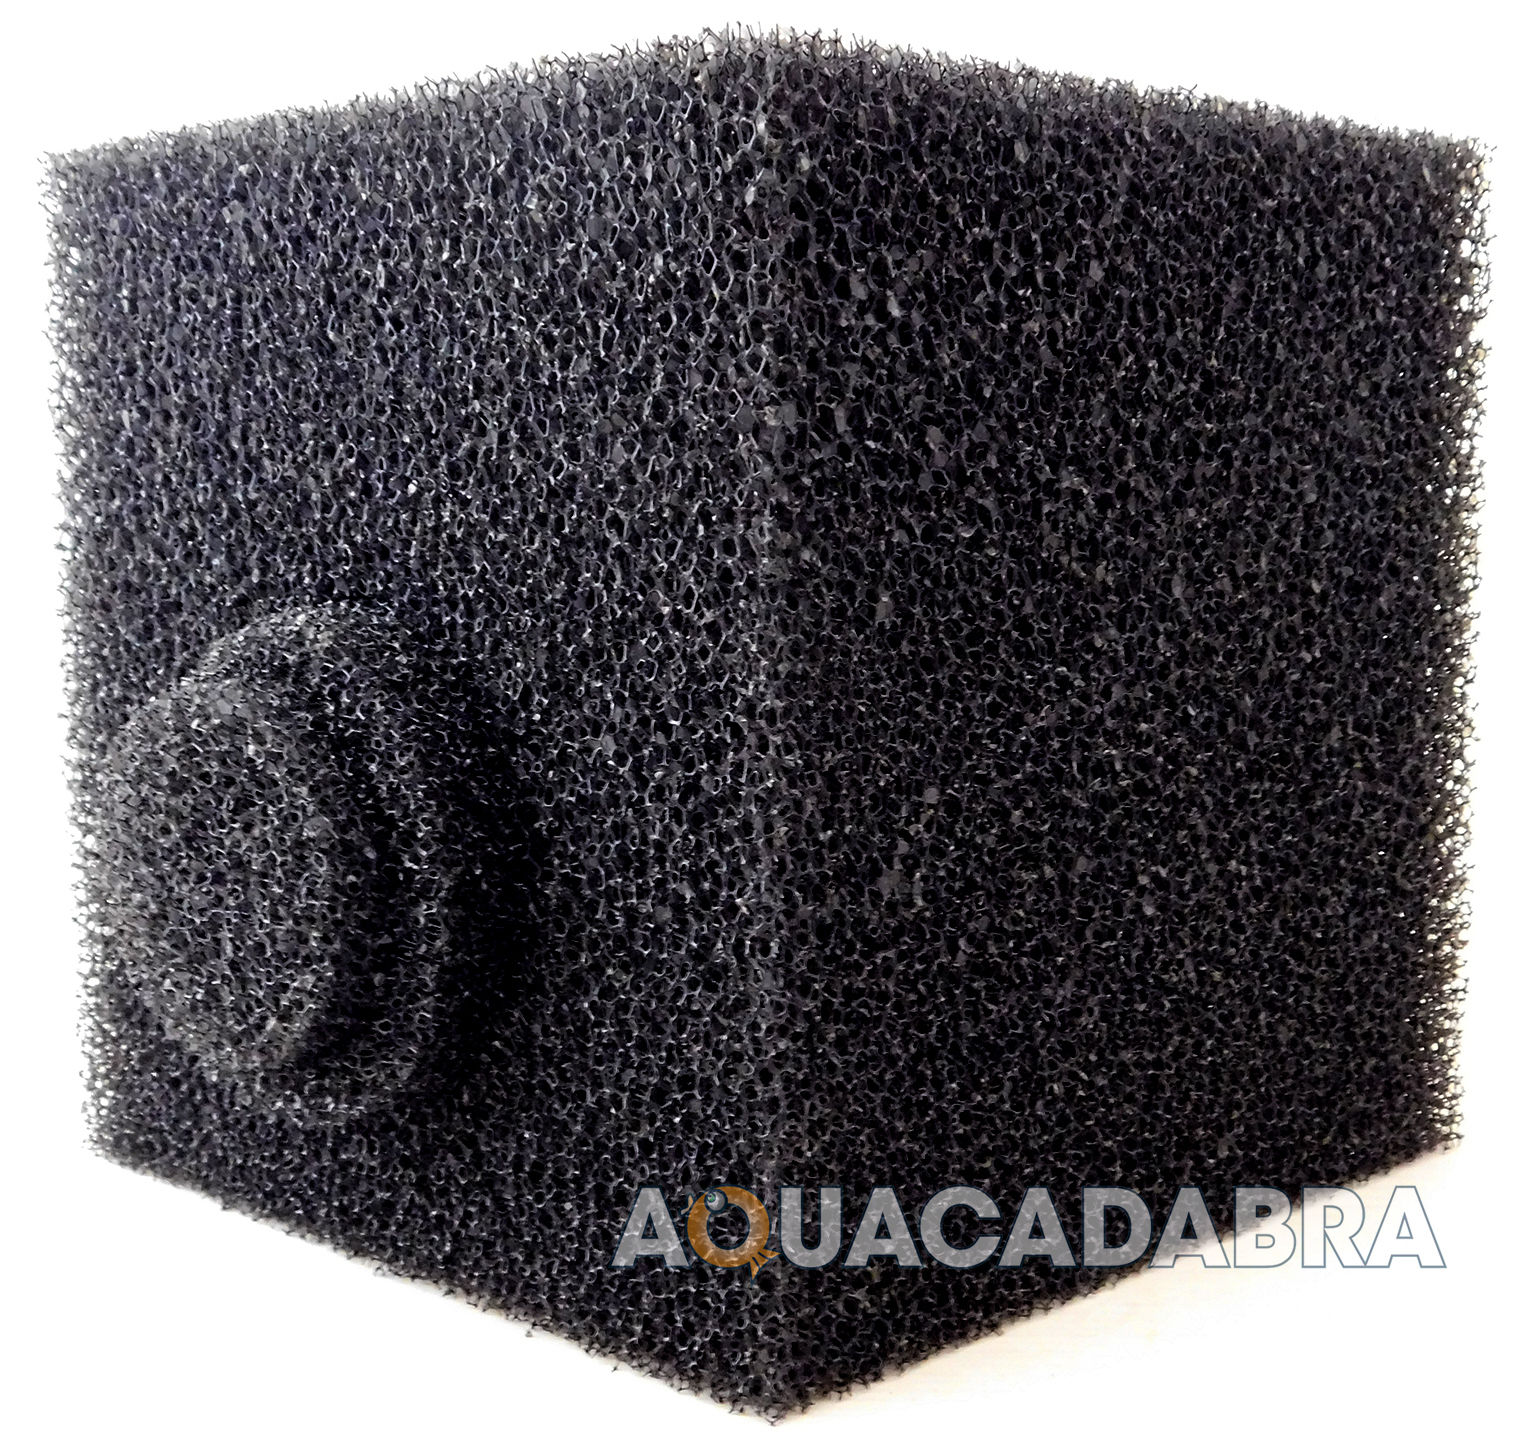 8 cube pond filter foam off centre hole pre filter sponge for Pond filter sponges